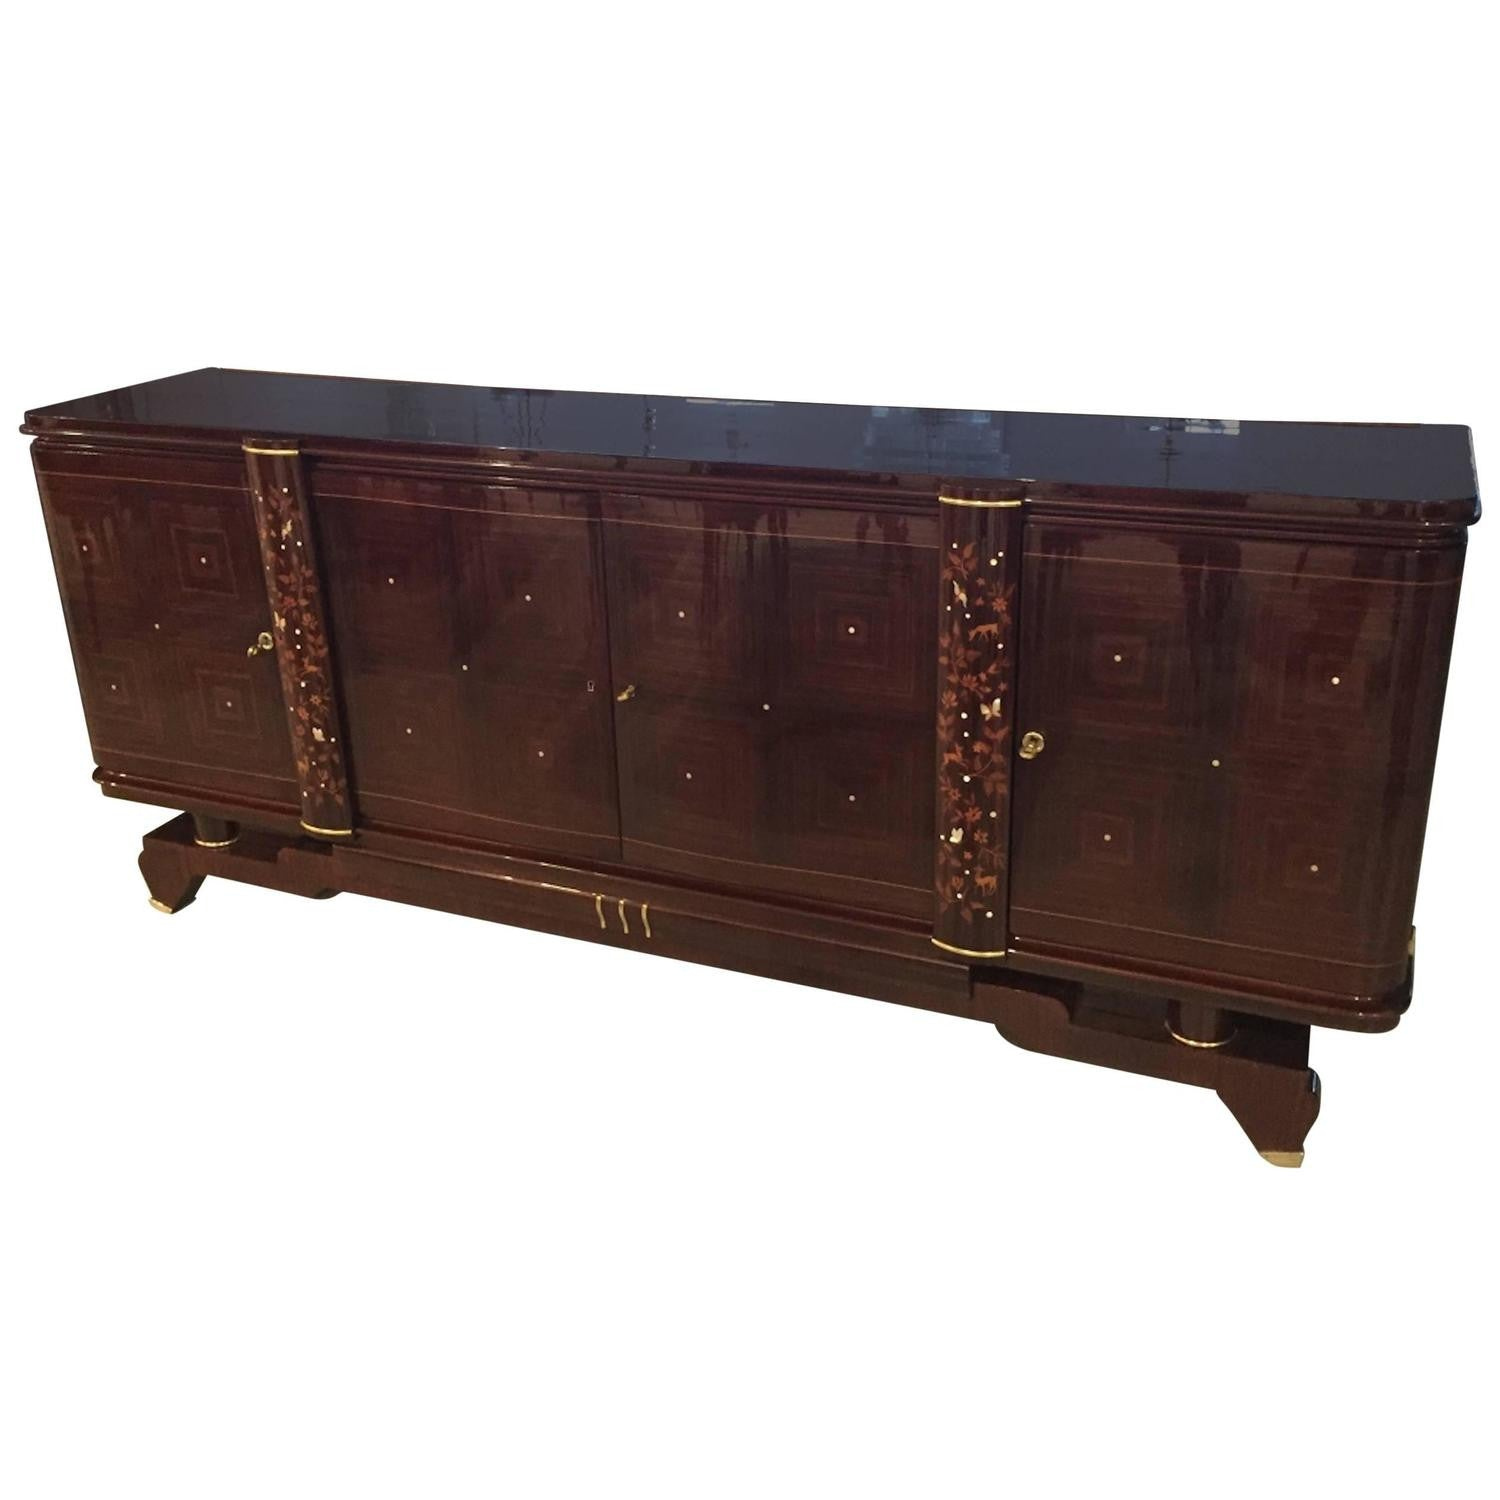 jules leleu style buffet french art deco 1920s 1 of a. Black Bedroom Furniture Sets. Home Design Ideas